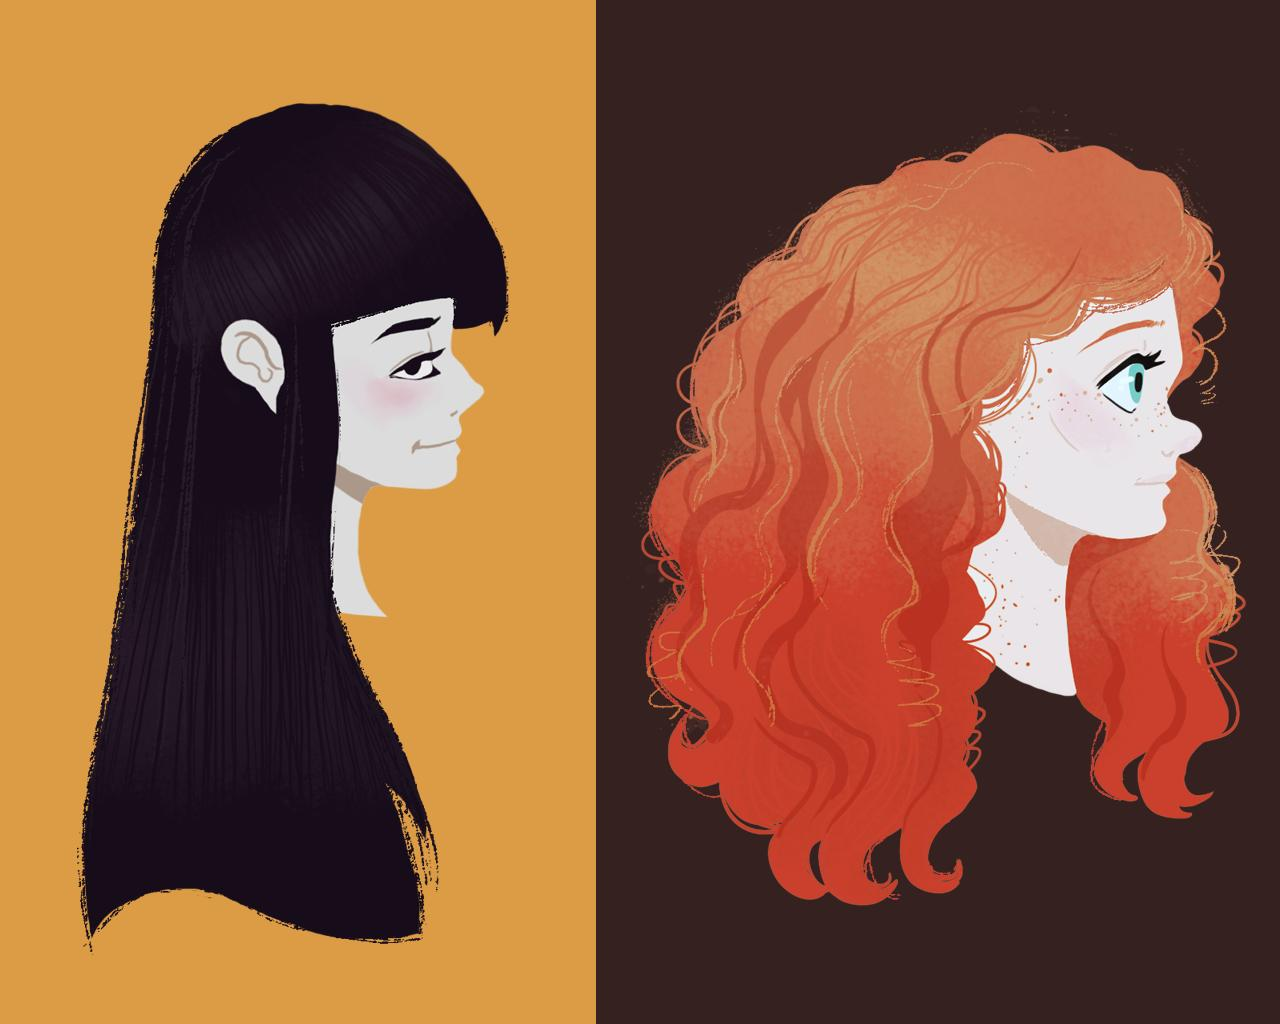 Simple Cartoon Portrait by arehime - 88881